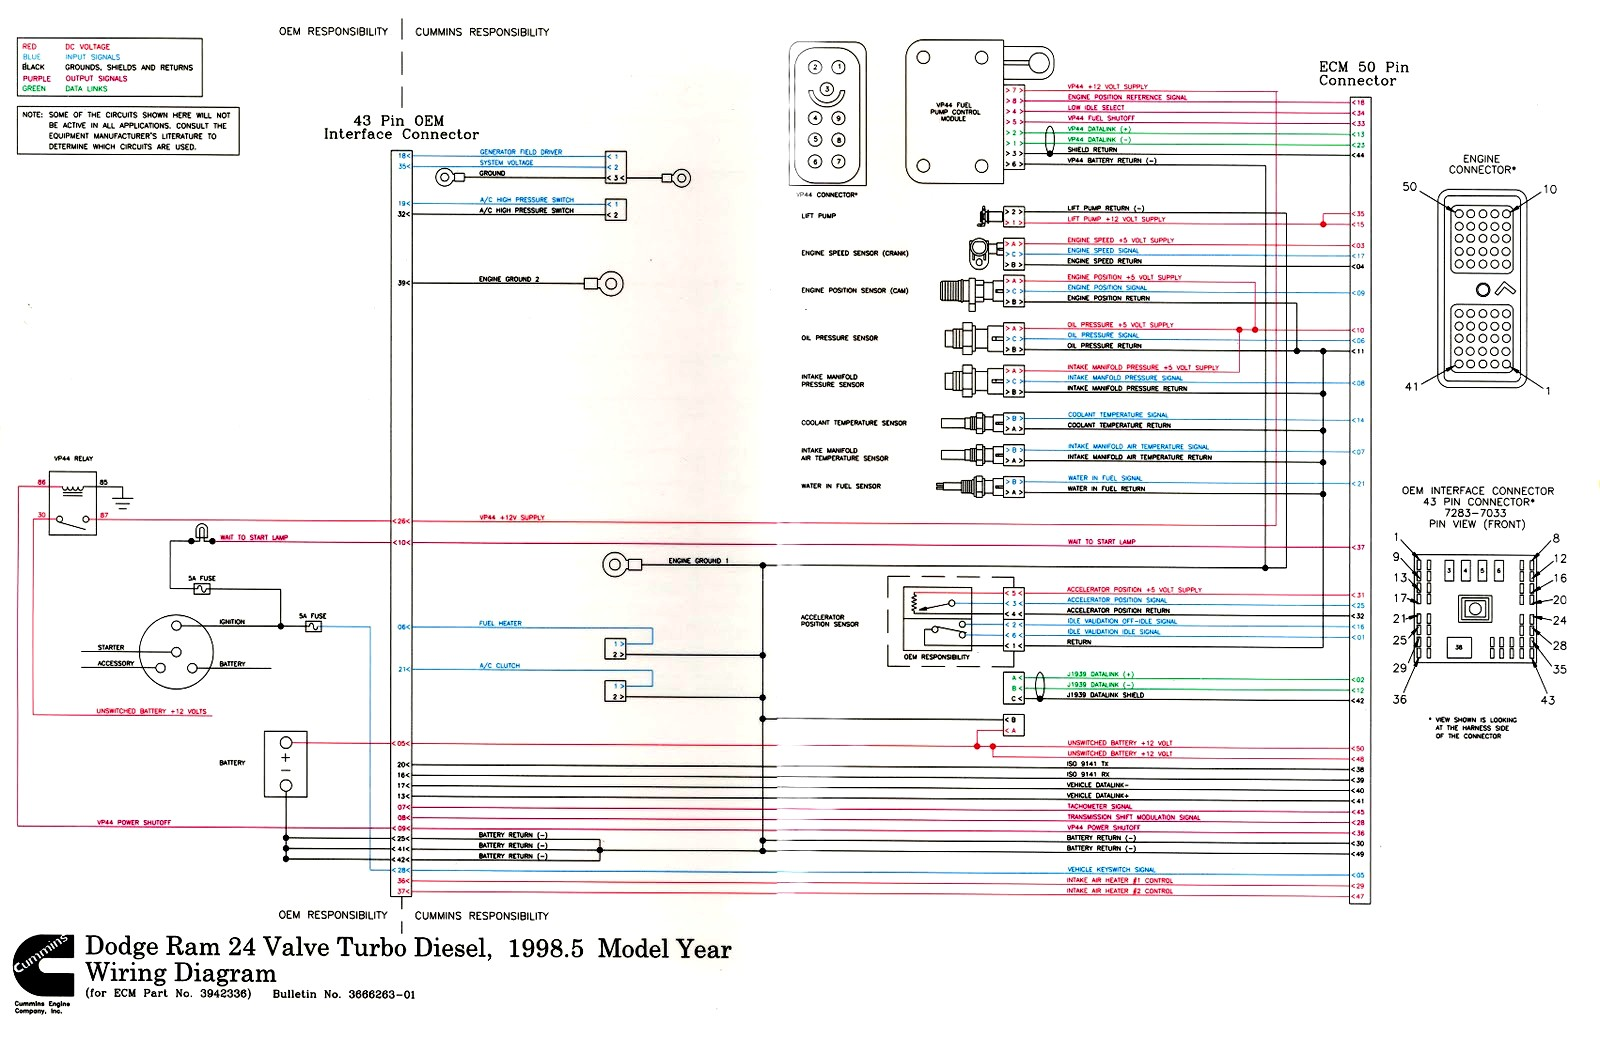 Cummins M11 Ecm Wiring Diagram: Famous Cat C13 Wiring Schematics Photos - Electrical  Circuit ,